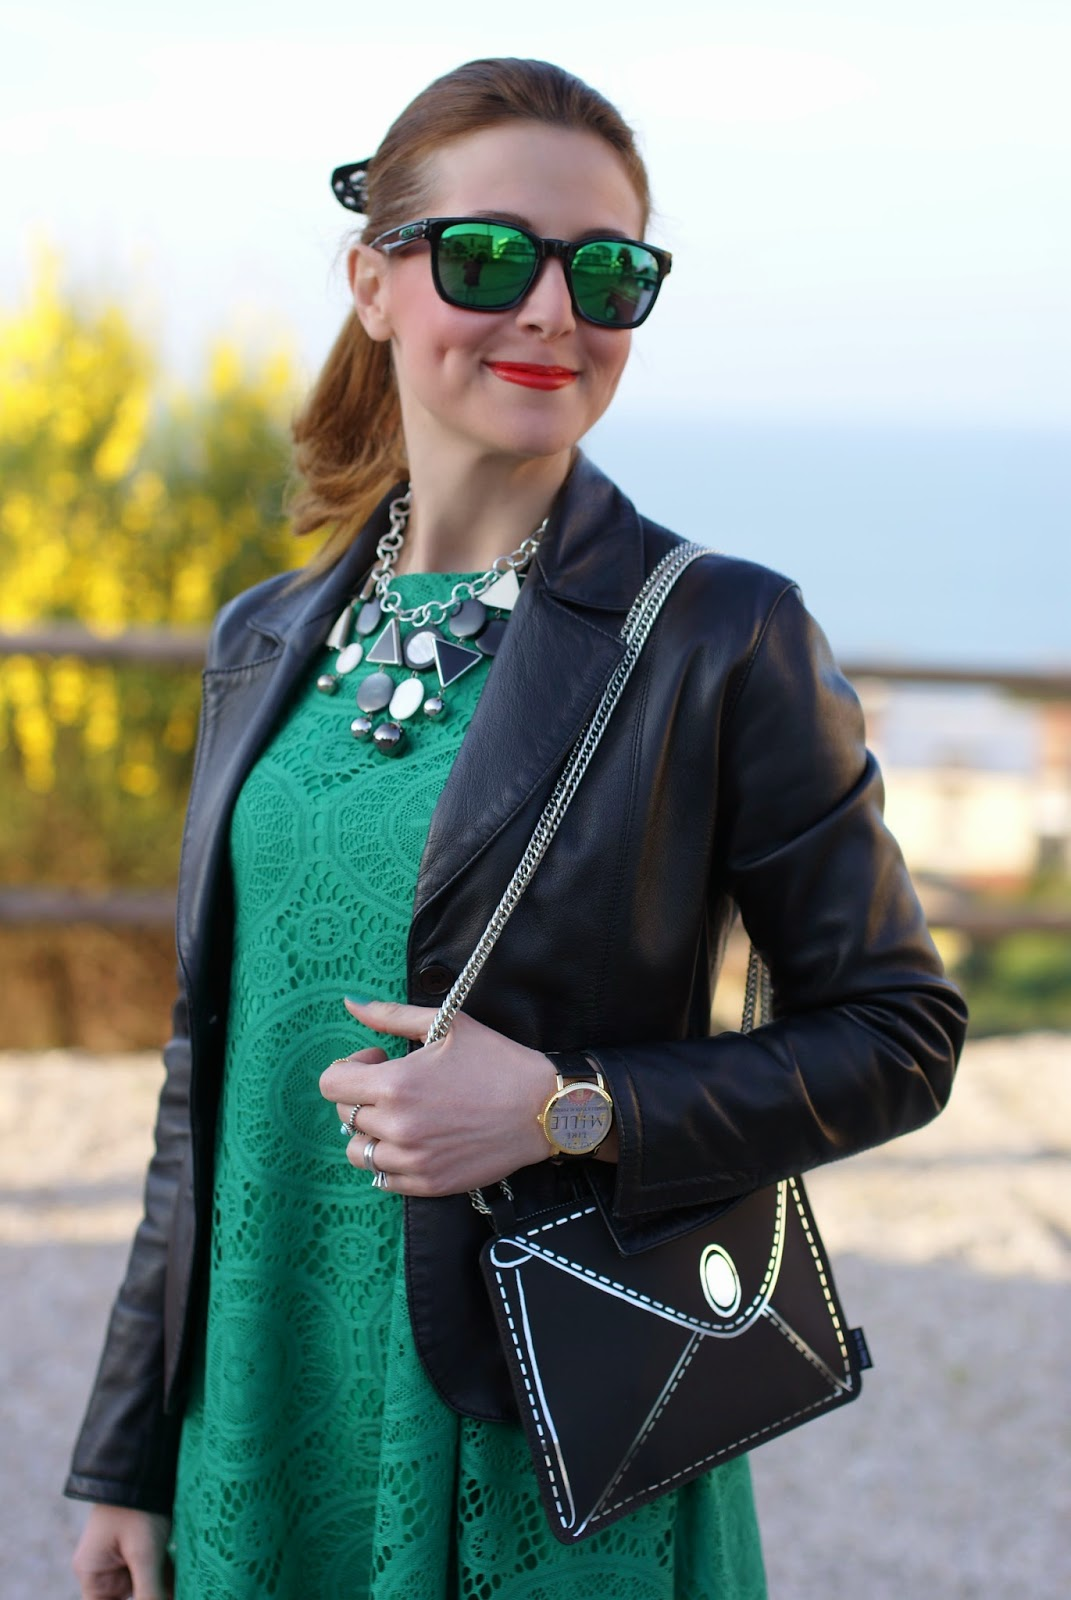 Vitti Ferria Contin jewelry, Millelire watch, Sheinside green dress, Fashion and Cookies, fashion blogger